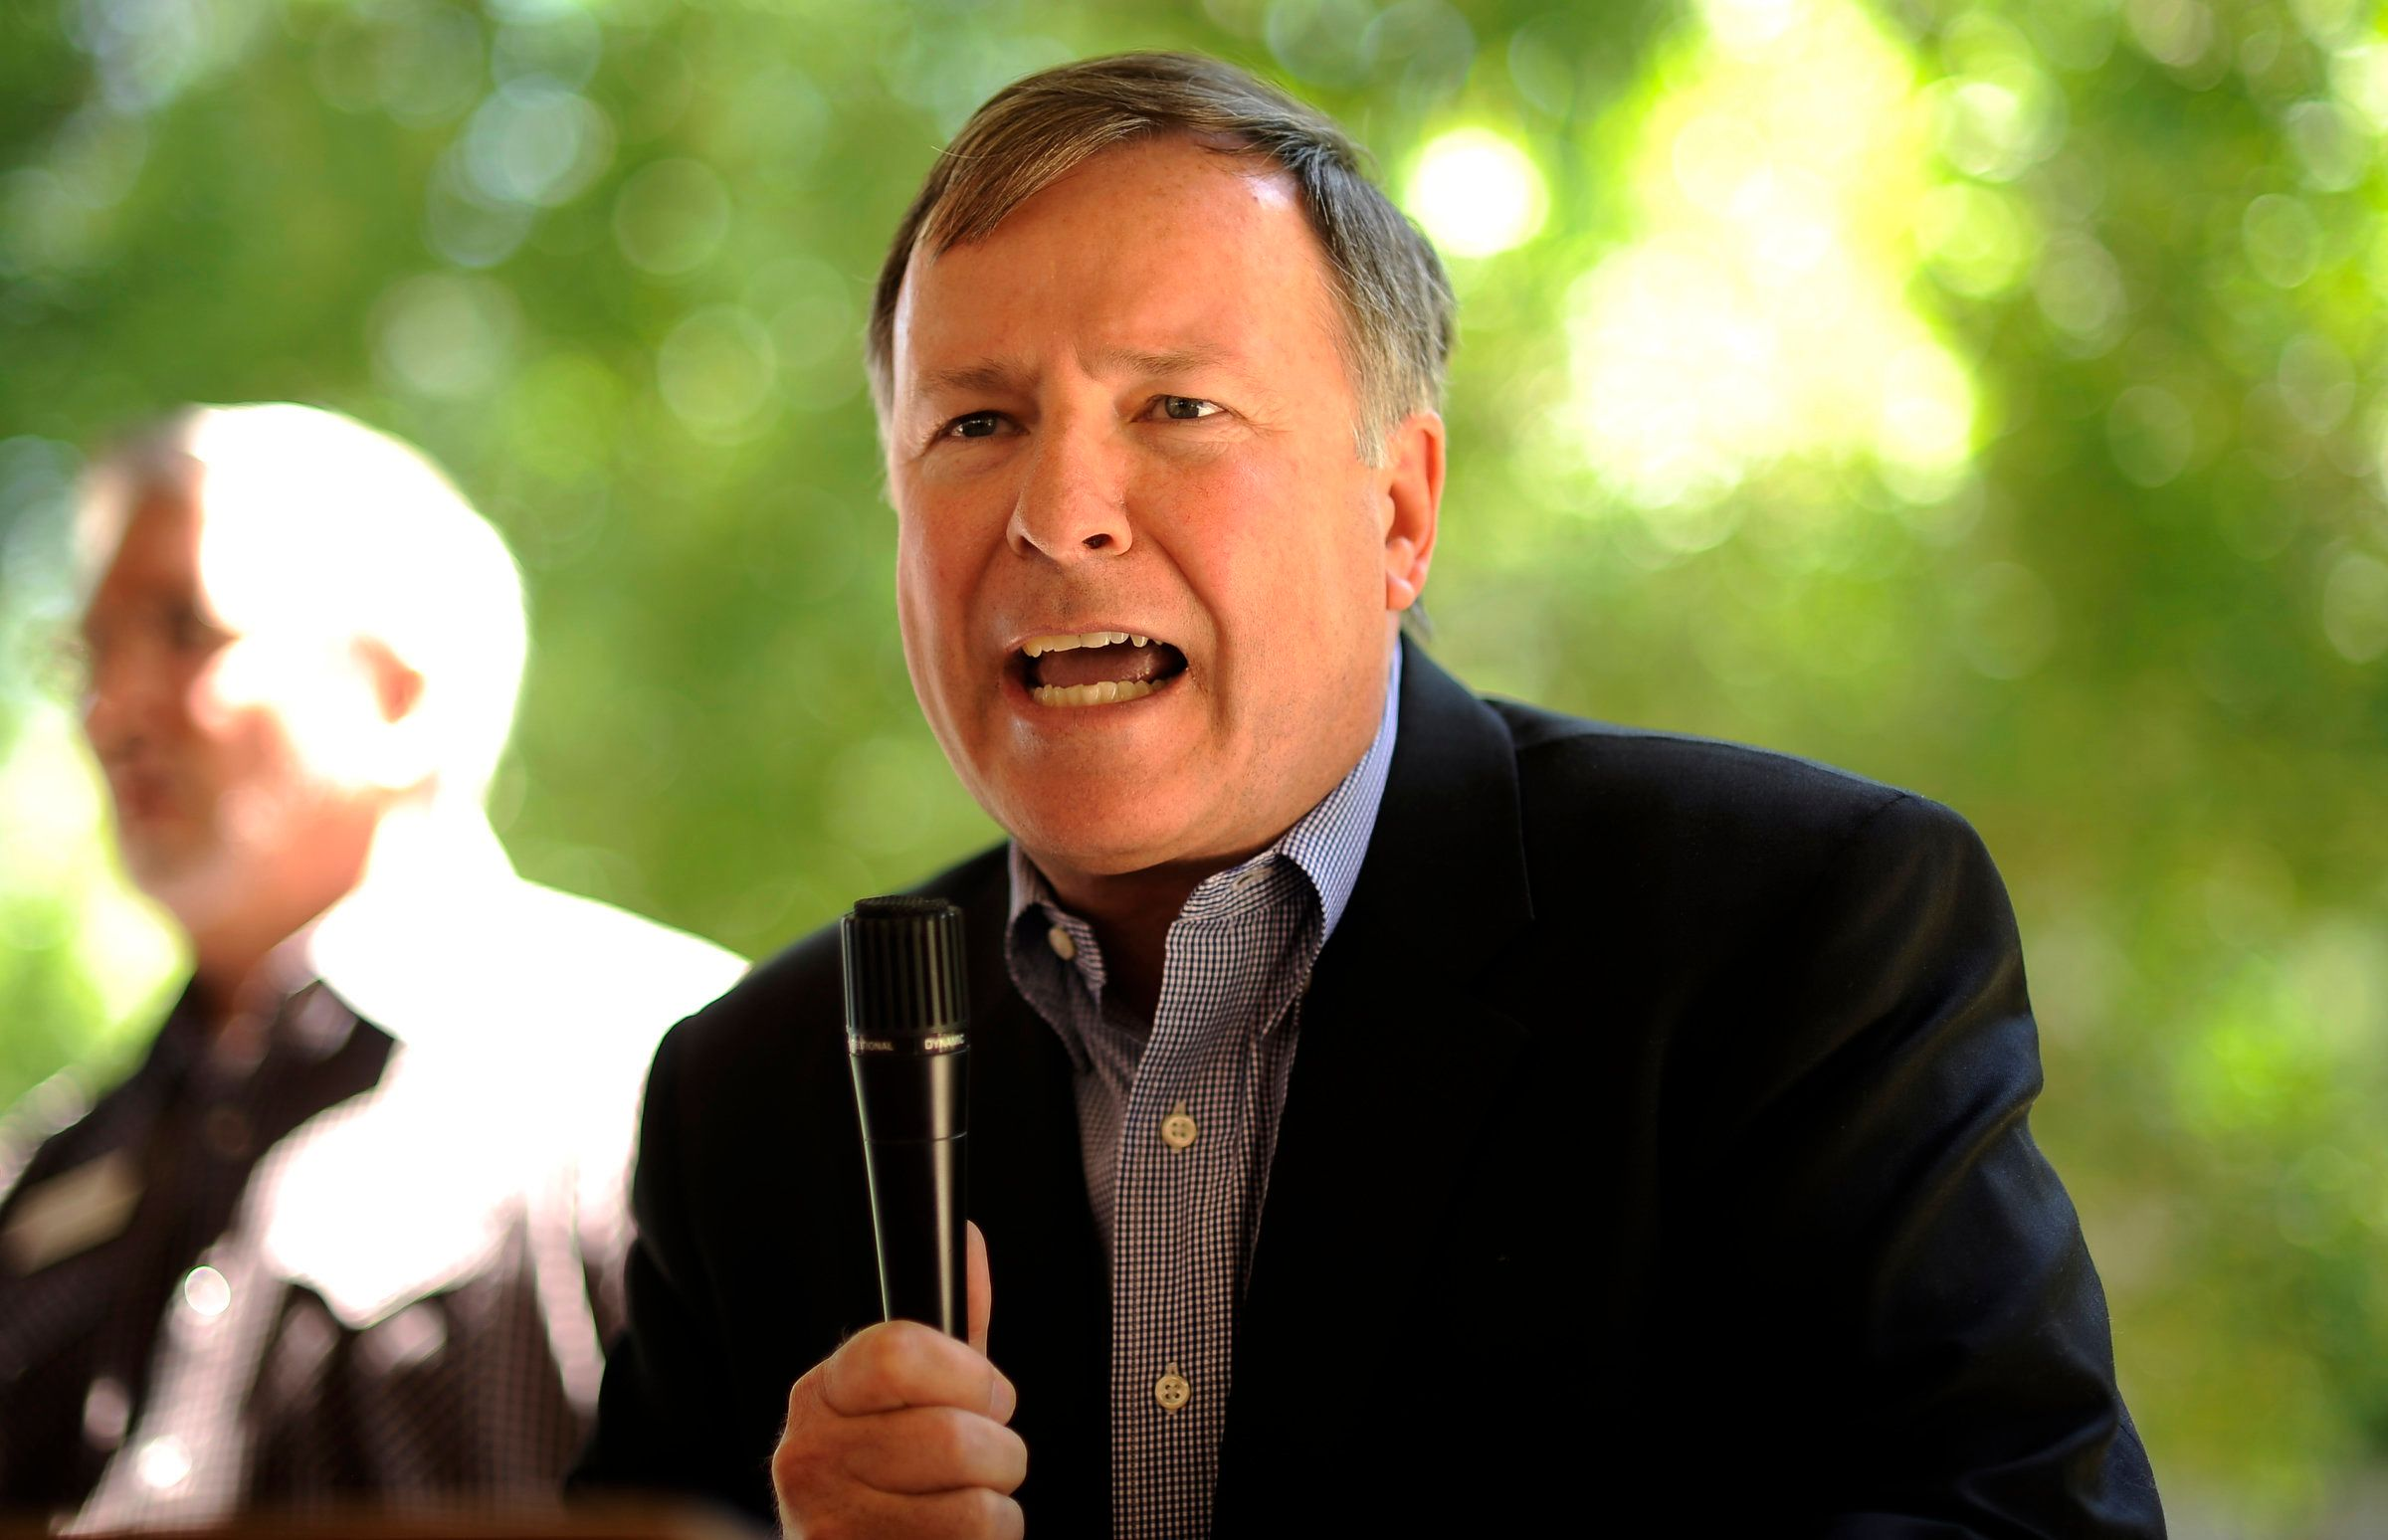 Judge orders GOP Rep. Doug Lamborn back on Colorado primary ballot